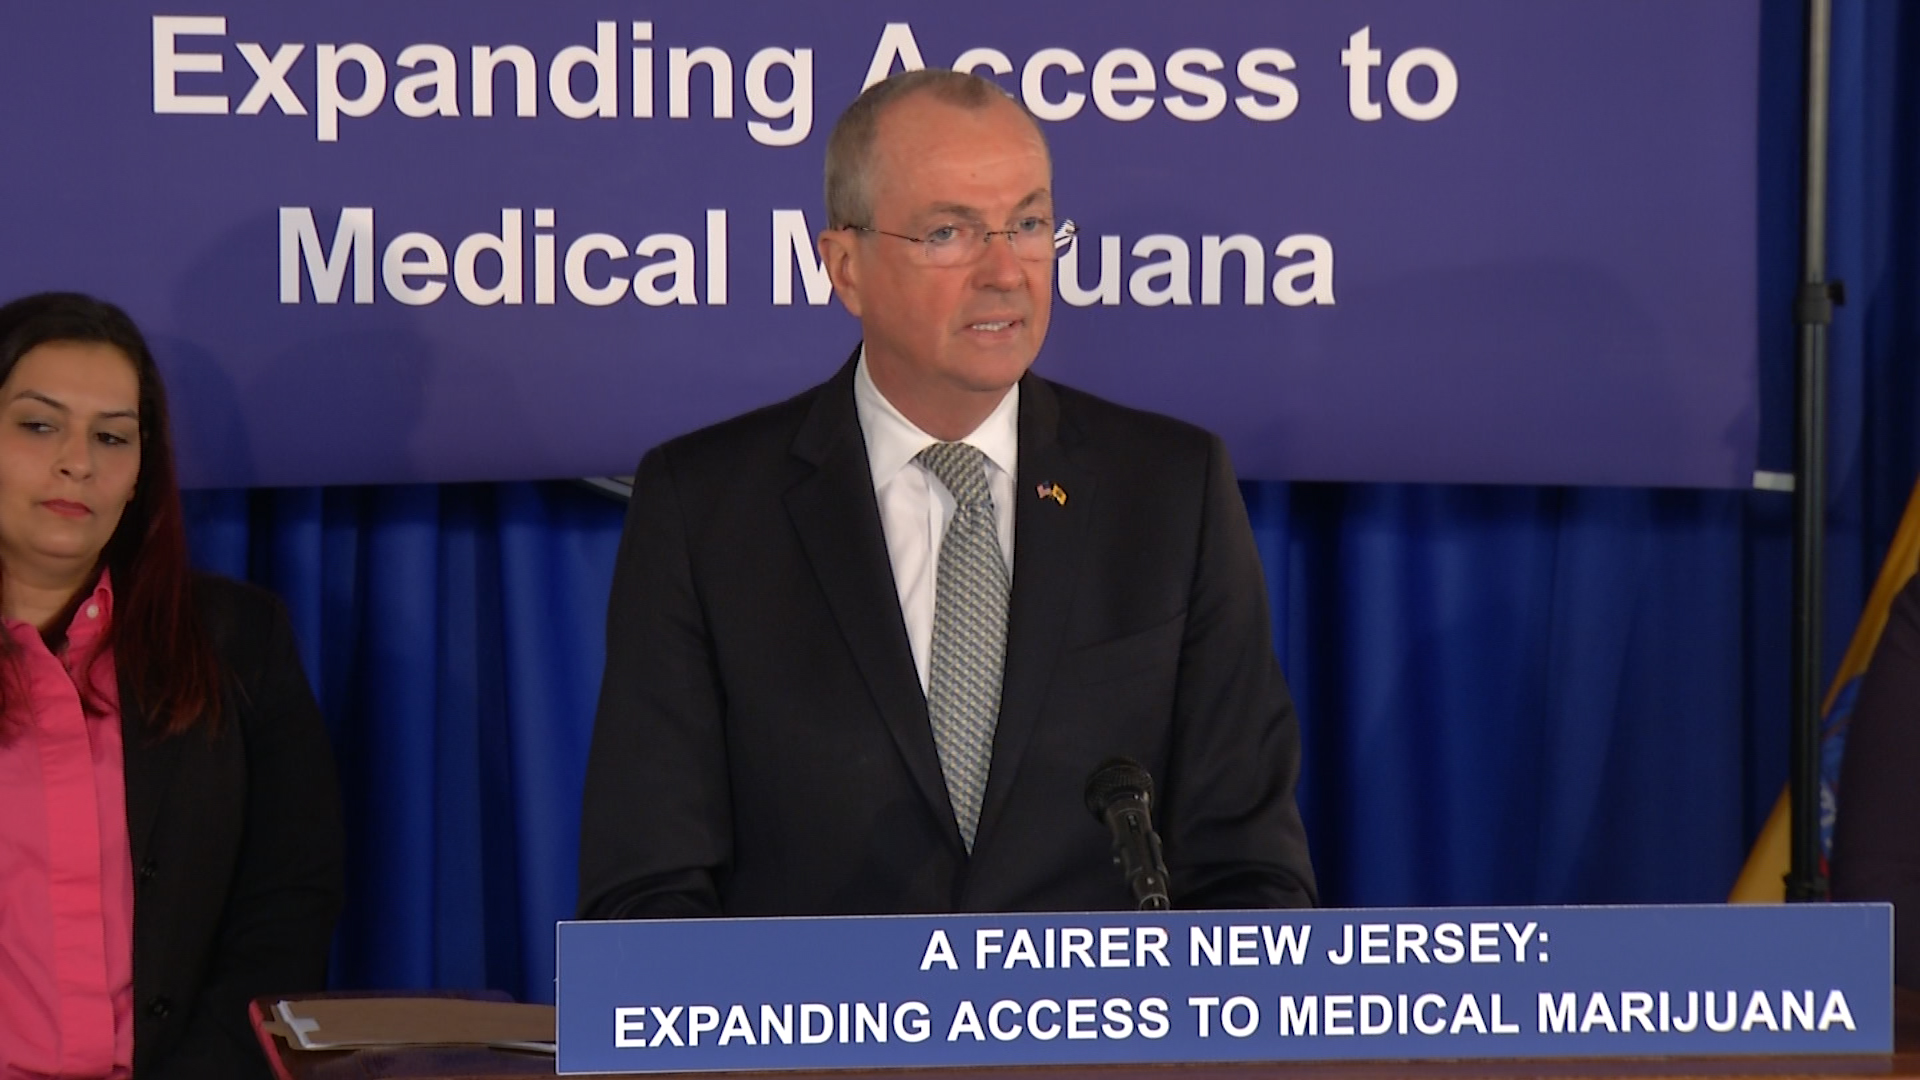 Murphy unveils plan for expanding medical marijuana program